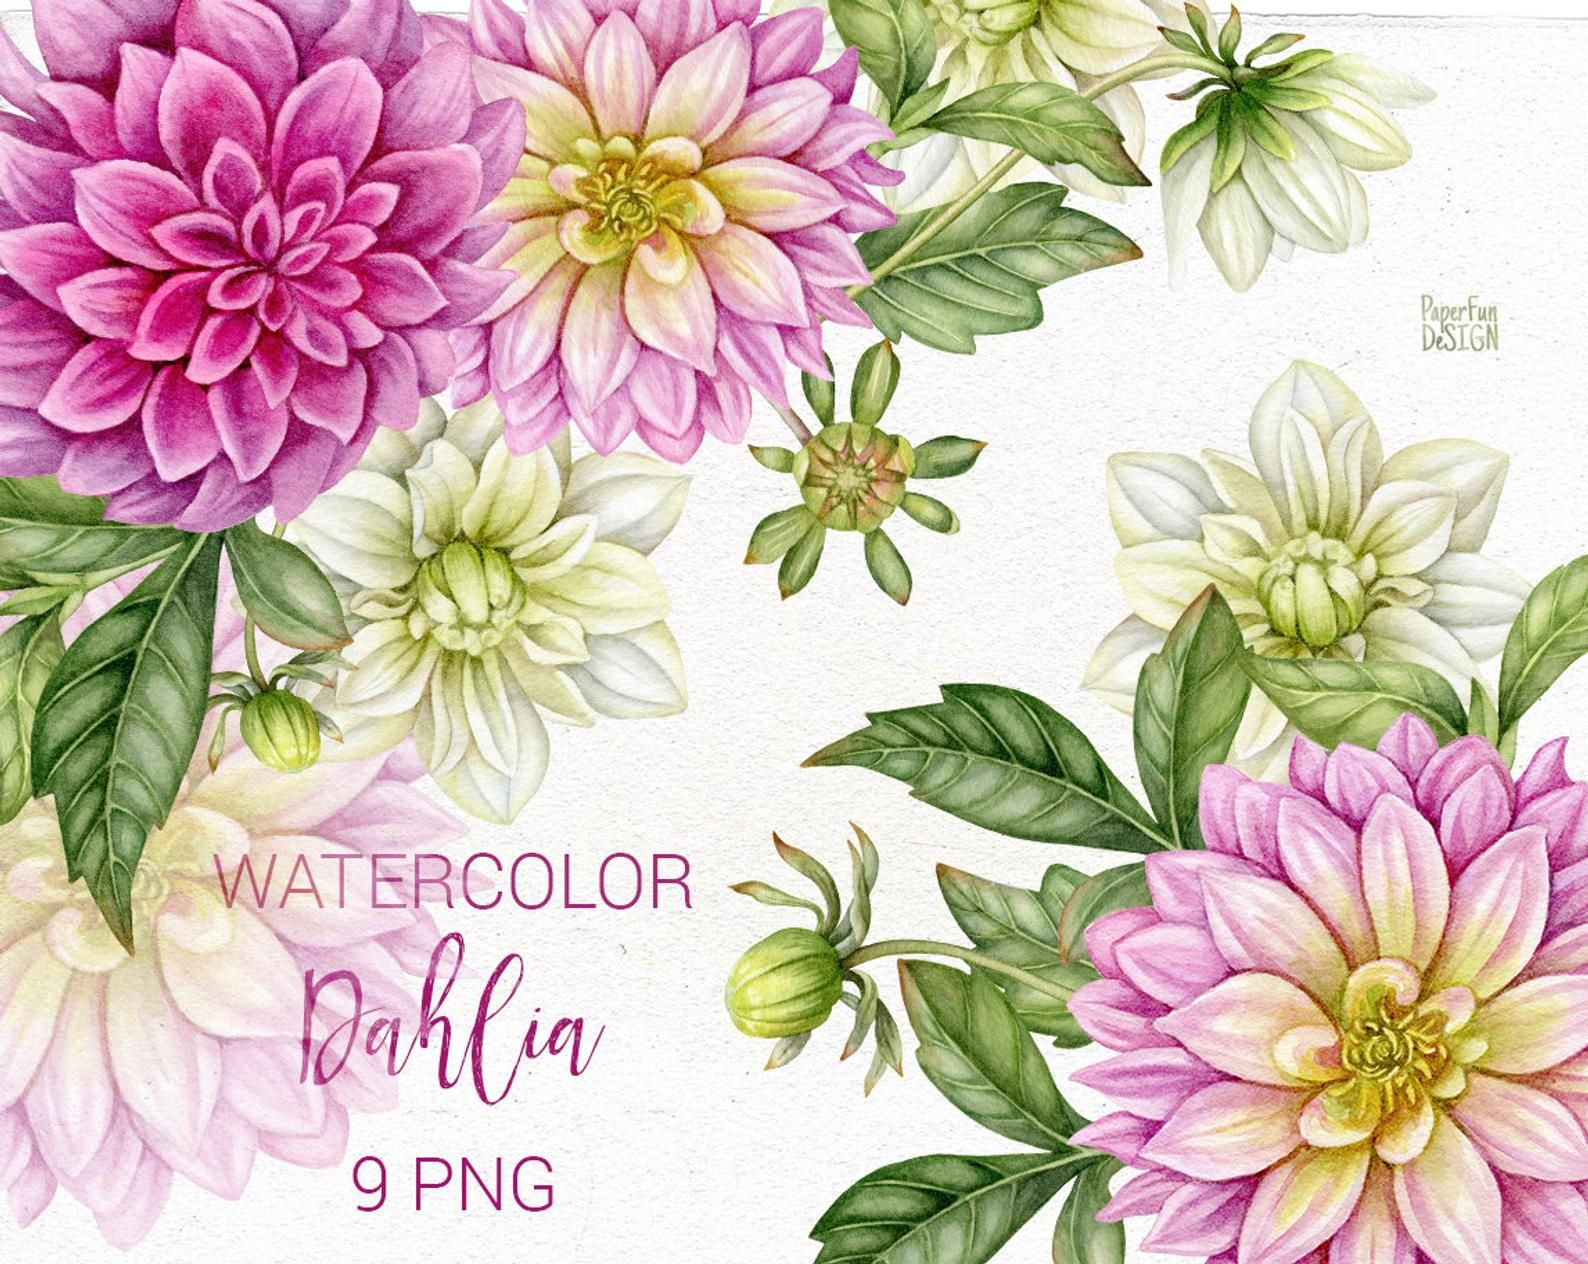 Watercolor Dahlia Flowers Buds And Leaves Clip Art Etsy In 2020 Dahlia Flower Botanical Flowers Print Dahlia